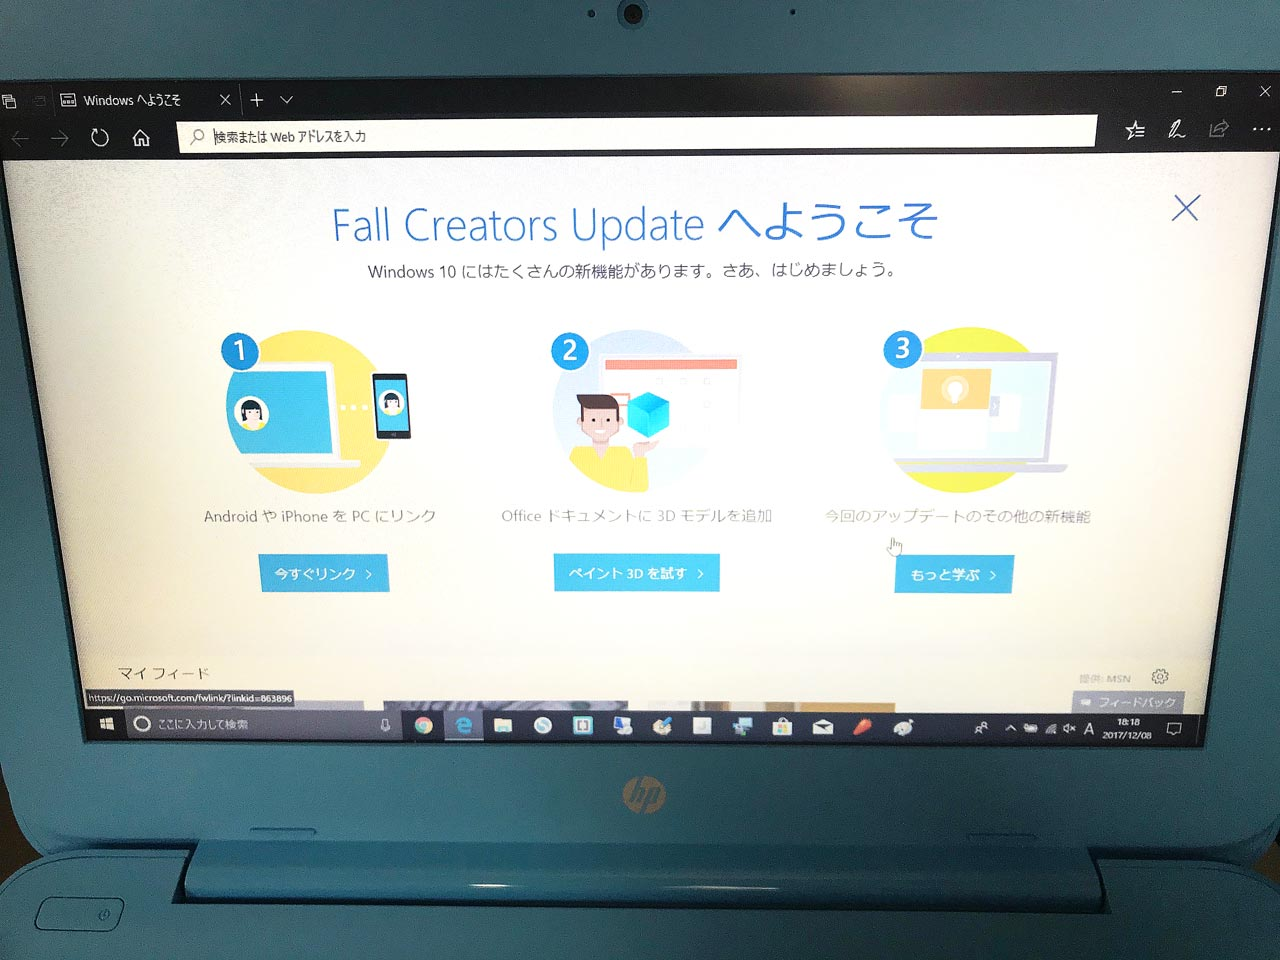 windows 10 fall creators update へようこそ